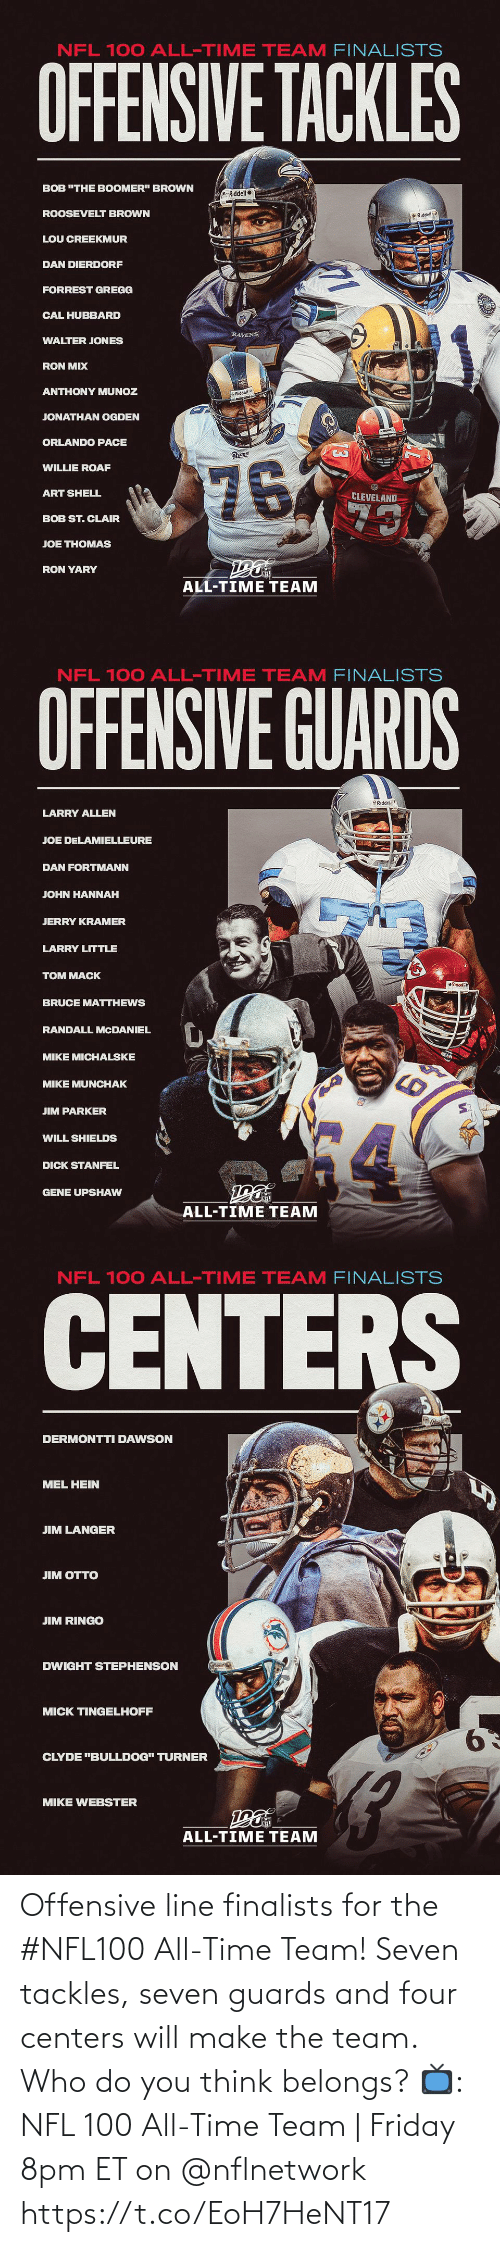 "Friday, Memes, and Nfl: NFL 100 ALL-TIME TEAM FINALISTS  OFFENSIVE TACKLES  BOB ""THE BOOMER"" BROWN  Riddel  ROOSEVELT BROWN  O Riddell  LOU CREEKMUR  DAN DIERDORF  FORREST GREGG  CAL HUBBARD  RAVENS  WALTER JONES  RON MIX  ANTHONY MUNOZ  Riddell  JONATHAN OGDEN  ORLANDO PACE  Rams  76  WILLIE ROAF  ART SHELL  CLEVELAND  73  BOB ST. CLAIR  JOE THOMAS  RON YARY  ALL-TIME TEAM   NFL 100 ALL-TIME TEAM FINALISTS  OFFENSIVE GUARDS  Riddel  LARRY ALLEN  JOE DELAMIELLEURE  DAN FORTMANN  JOHN HANNAH  JERRY KRAMER  LARRY LITTLE  TOM MACK  BRUCE MATTHEWS  RANDALL MCDANIEL  MIKE MICHALSKE  MIKE MUNCHAK  JIM PARKER  WILL SHIELDS  DICK STANFEL  GENE UPSHAW  ALL-TIME TEAM   NFL 100 ALL-TIME TEAM FINALISTS  CENTERS  DERMONTTI DAWSON  MEL HEIN  JIM LANGER  ЛM OТTO  JIM RINGO  DWIGHT STEPHENSON  MICK TINGELHOFF  9.  CLYDE ""BULLDOG"" TURNER  MIKE WEBSTER  ALL-TIME TEAM Offensive line finalists for the #NFL100 All-Time Team!  Seven tackles, seven guards and four centers will make the team. Who do you think belongs?  📺: NFL 100 All-Time Team 